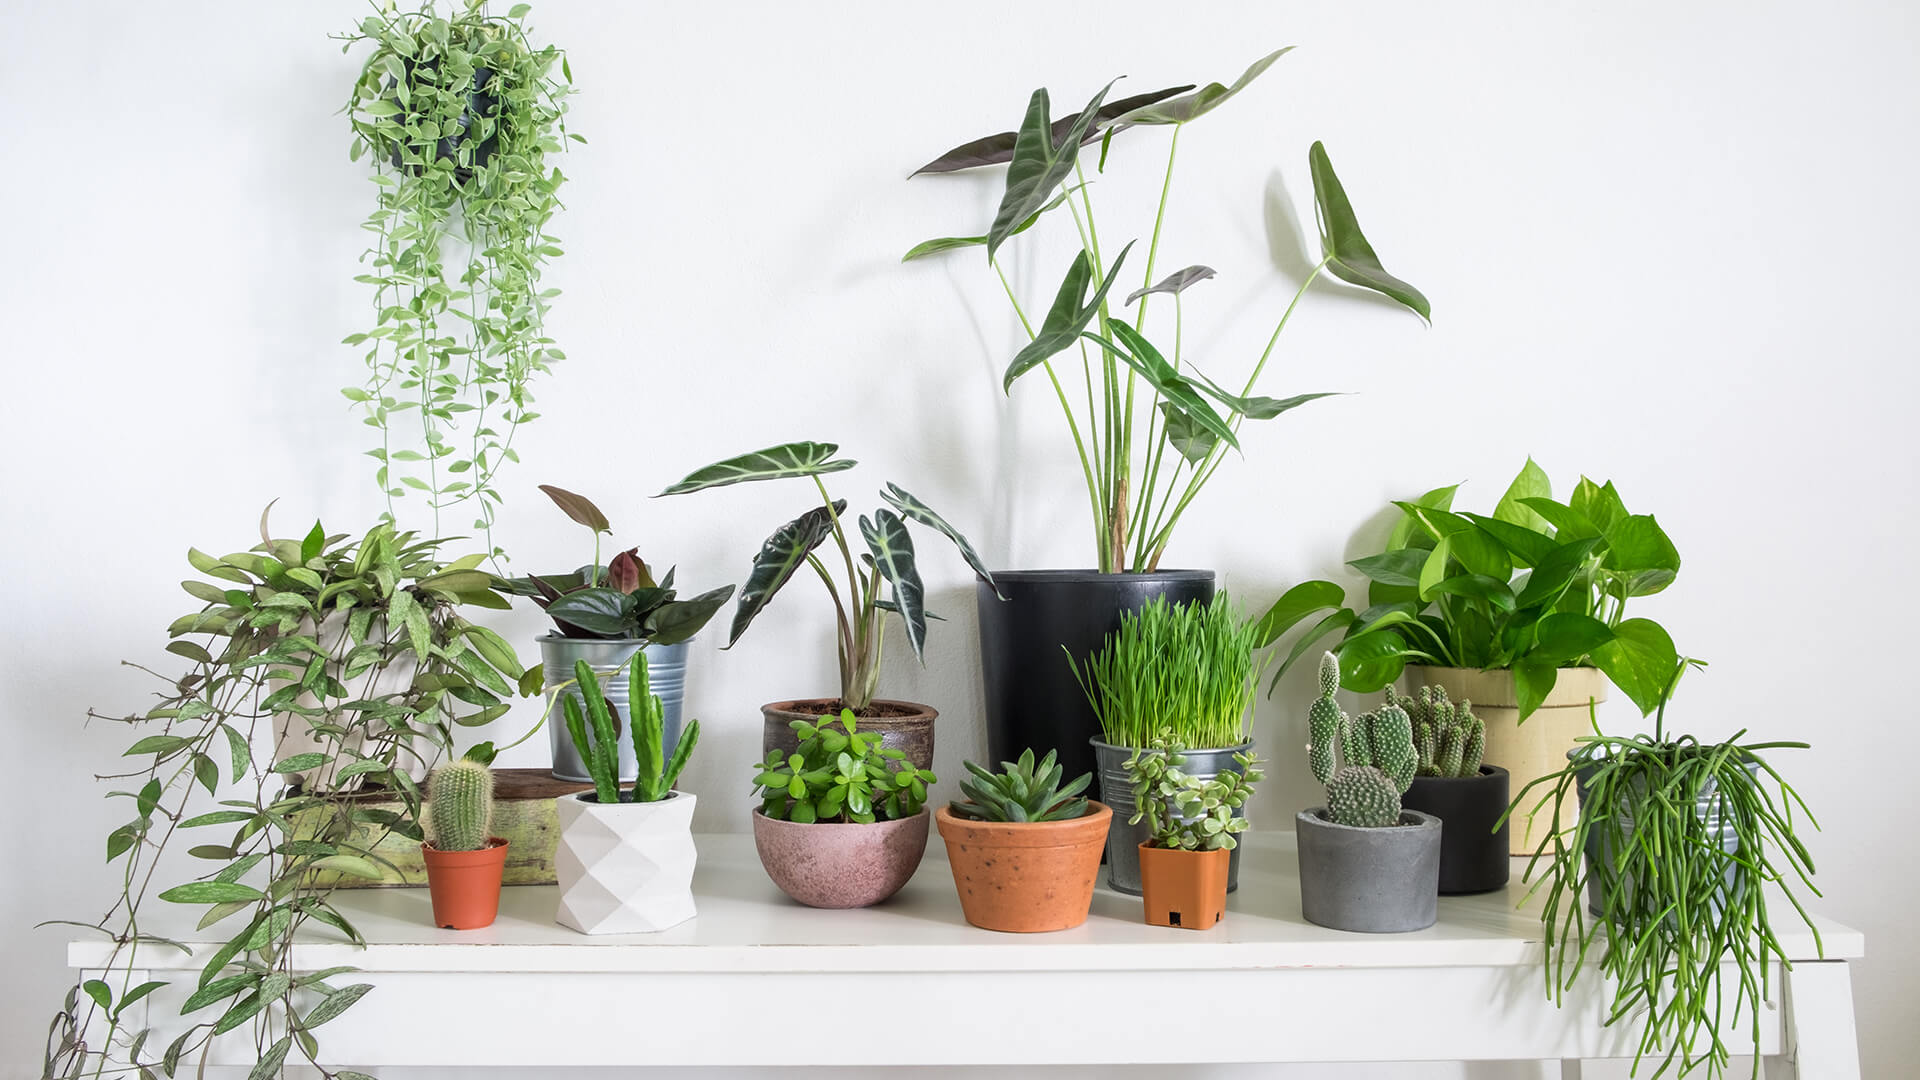 How to care for your houseplants